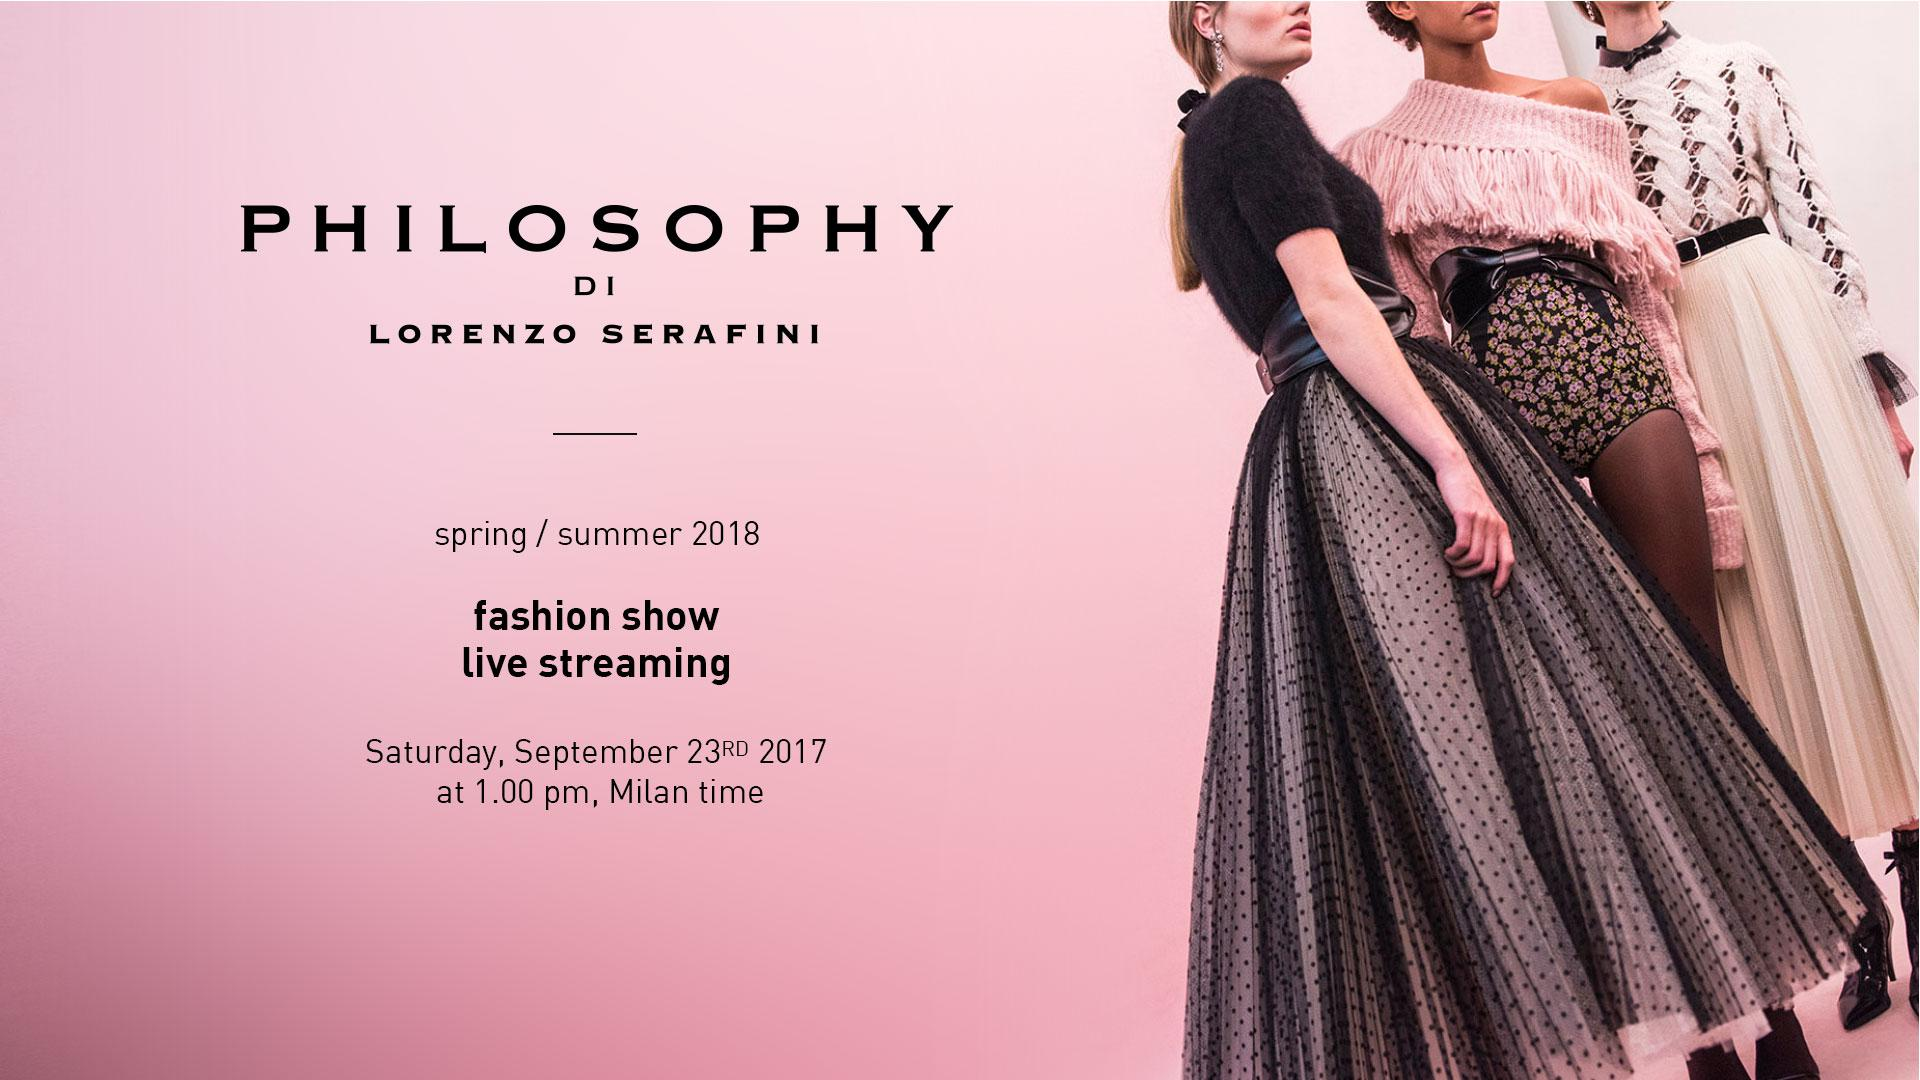 Philosophy Di Lorenzo Serafini Spring Summer 2018 Fashion Show Live Streaming Milan